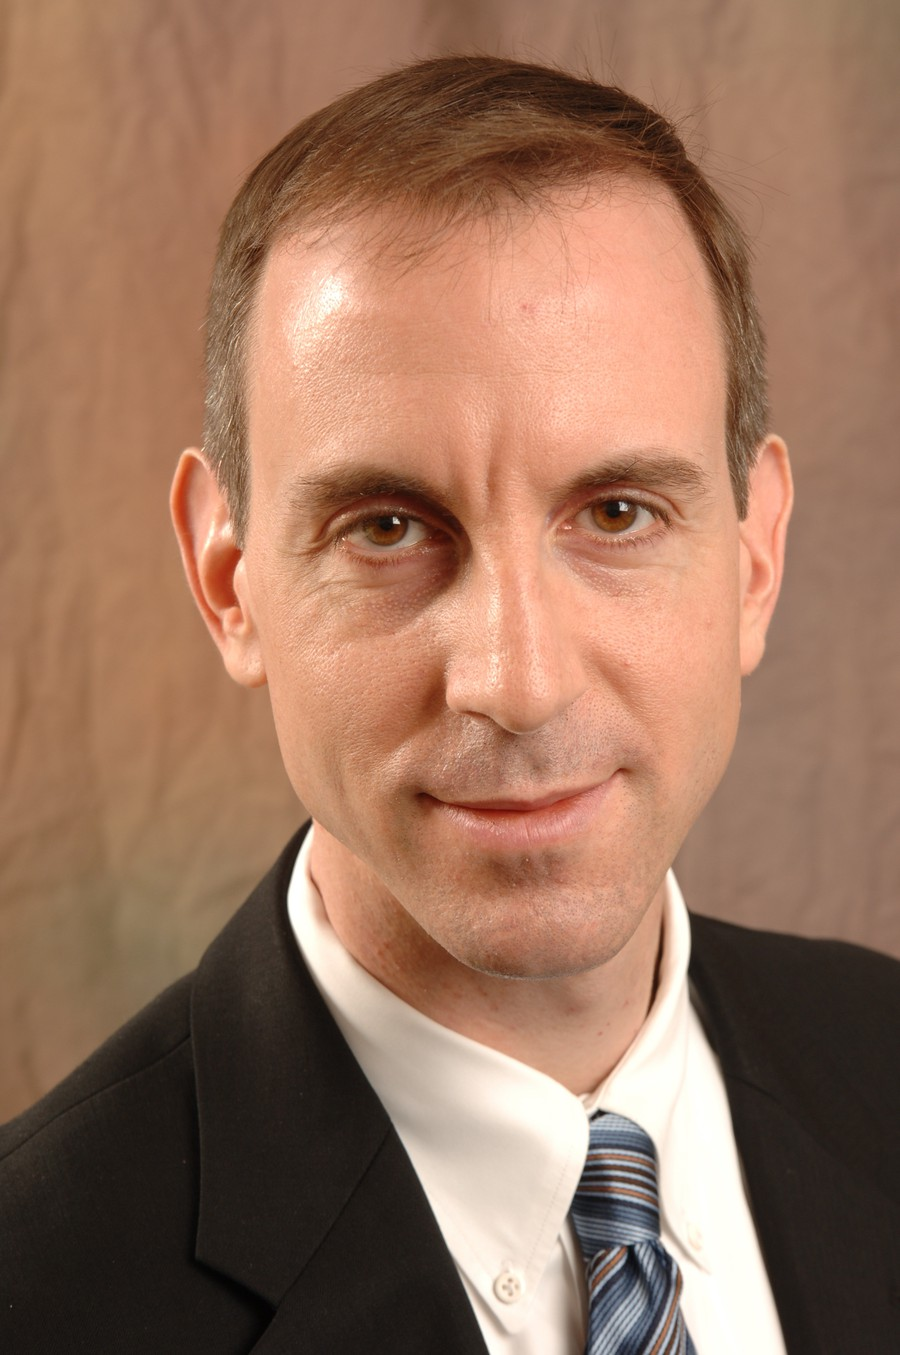 Professor Eric Posner is the Kirkland & Ellis Distinguished Service Professor of Law at the University of Chicago Law School. He recently co-wrote a controversial article for Politico.